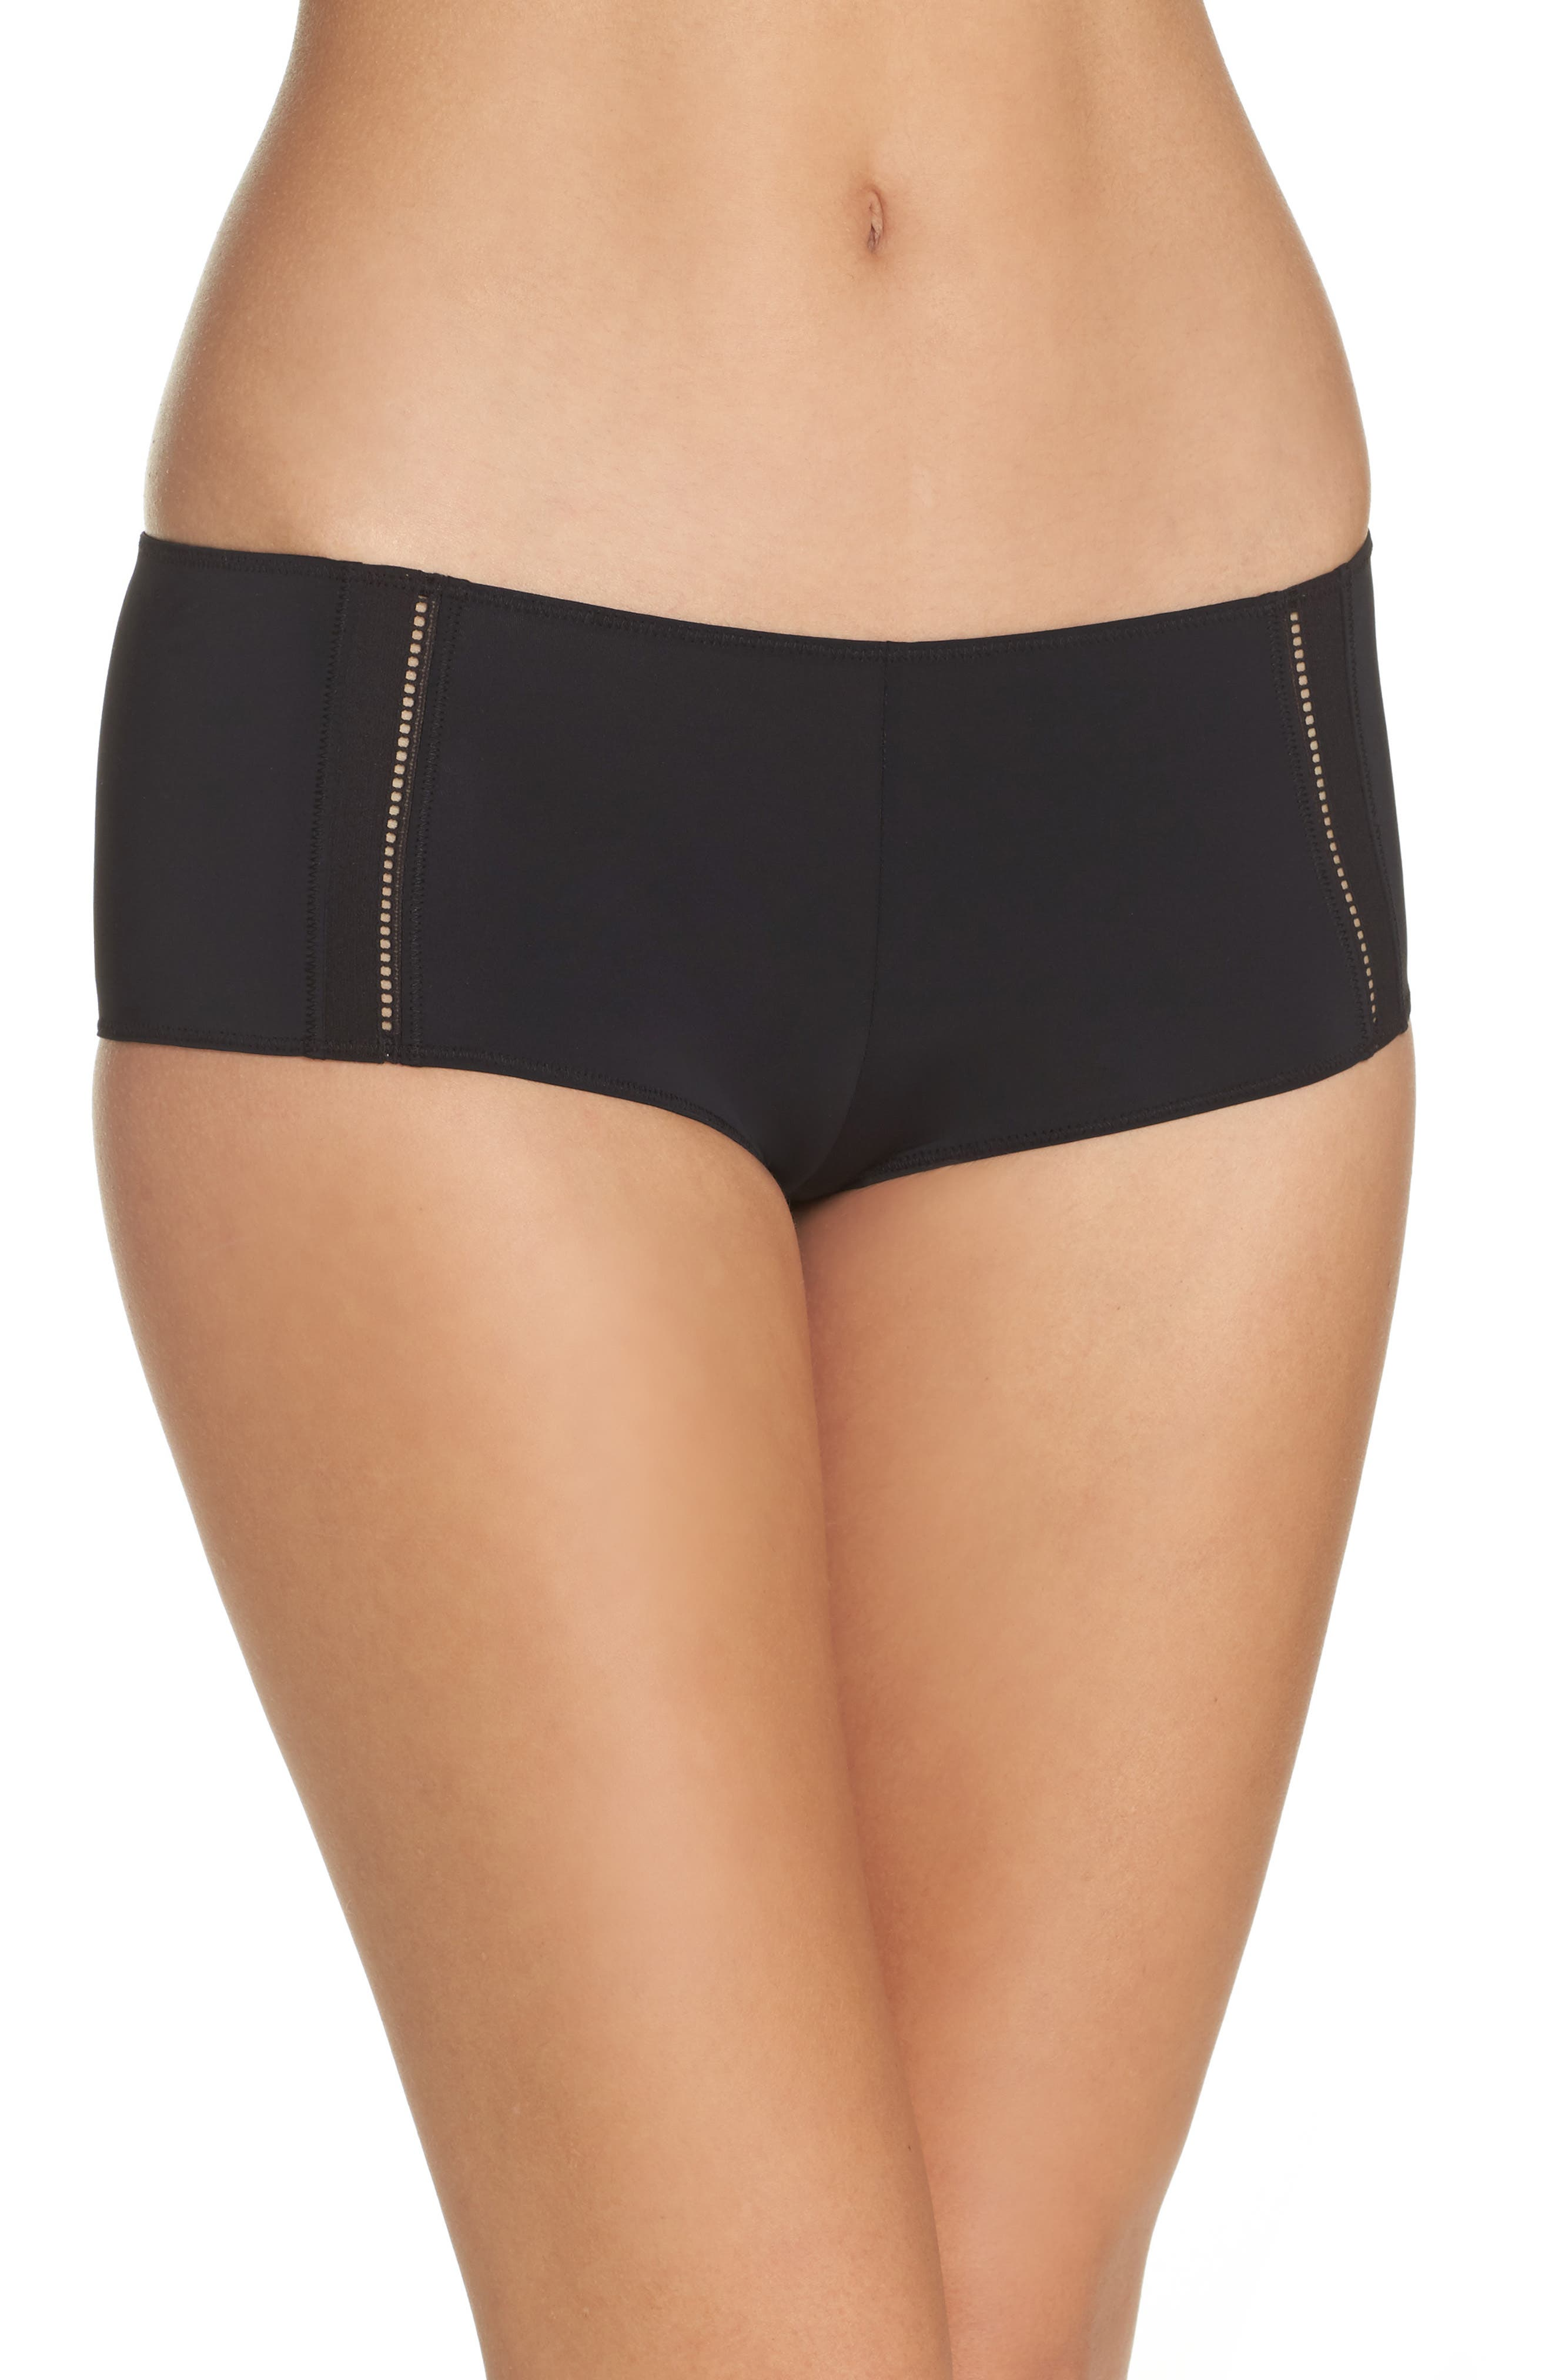 Intimately FP Truth or Dare Boyshorts,                         Main,                         color, 001